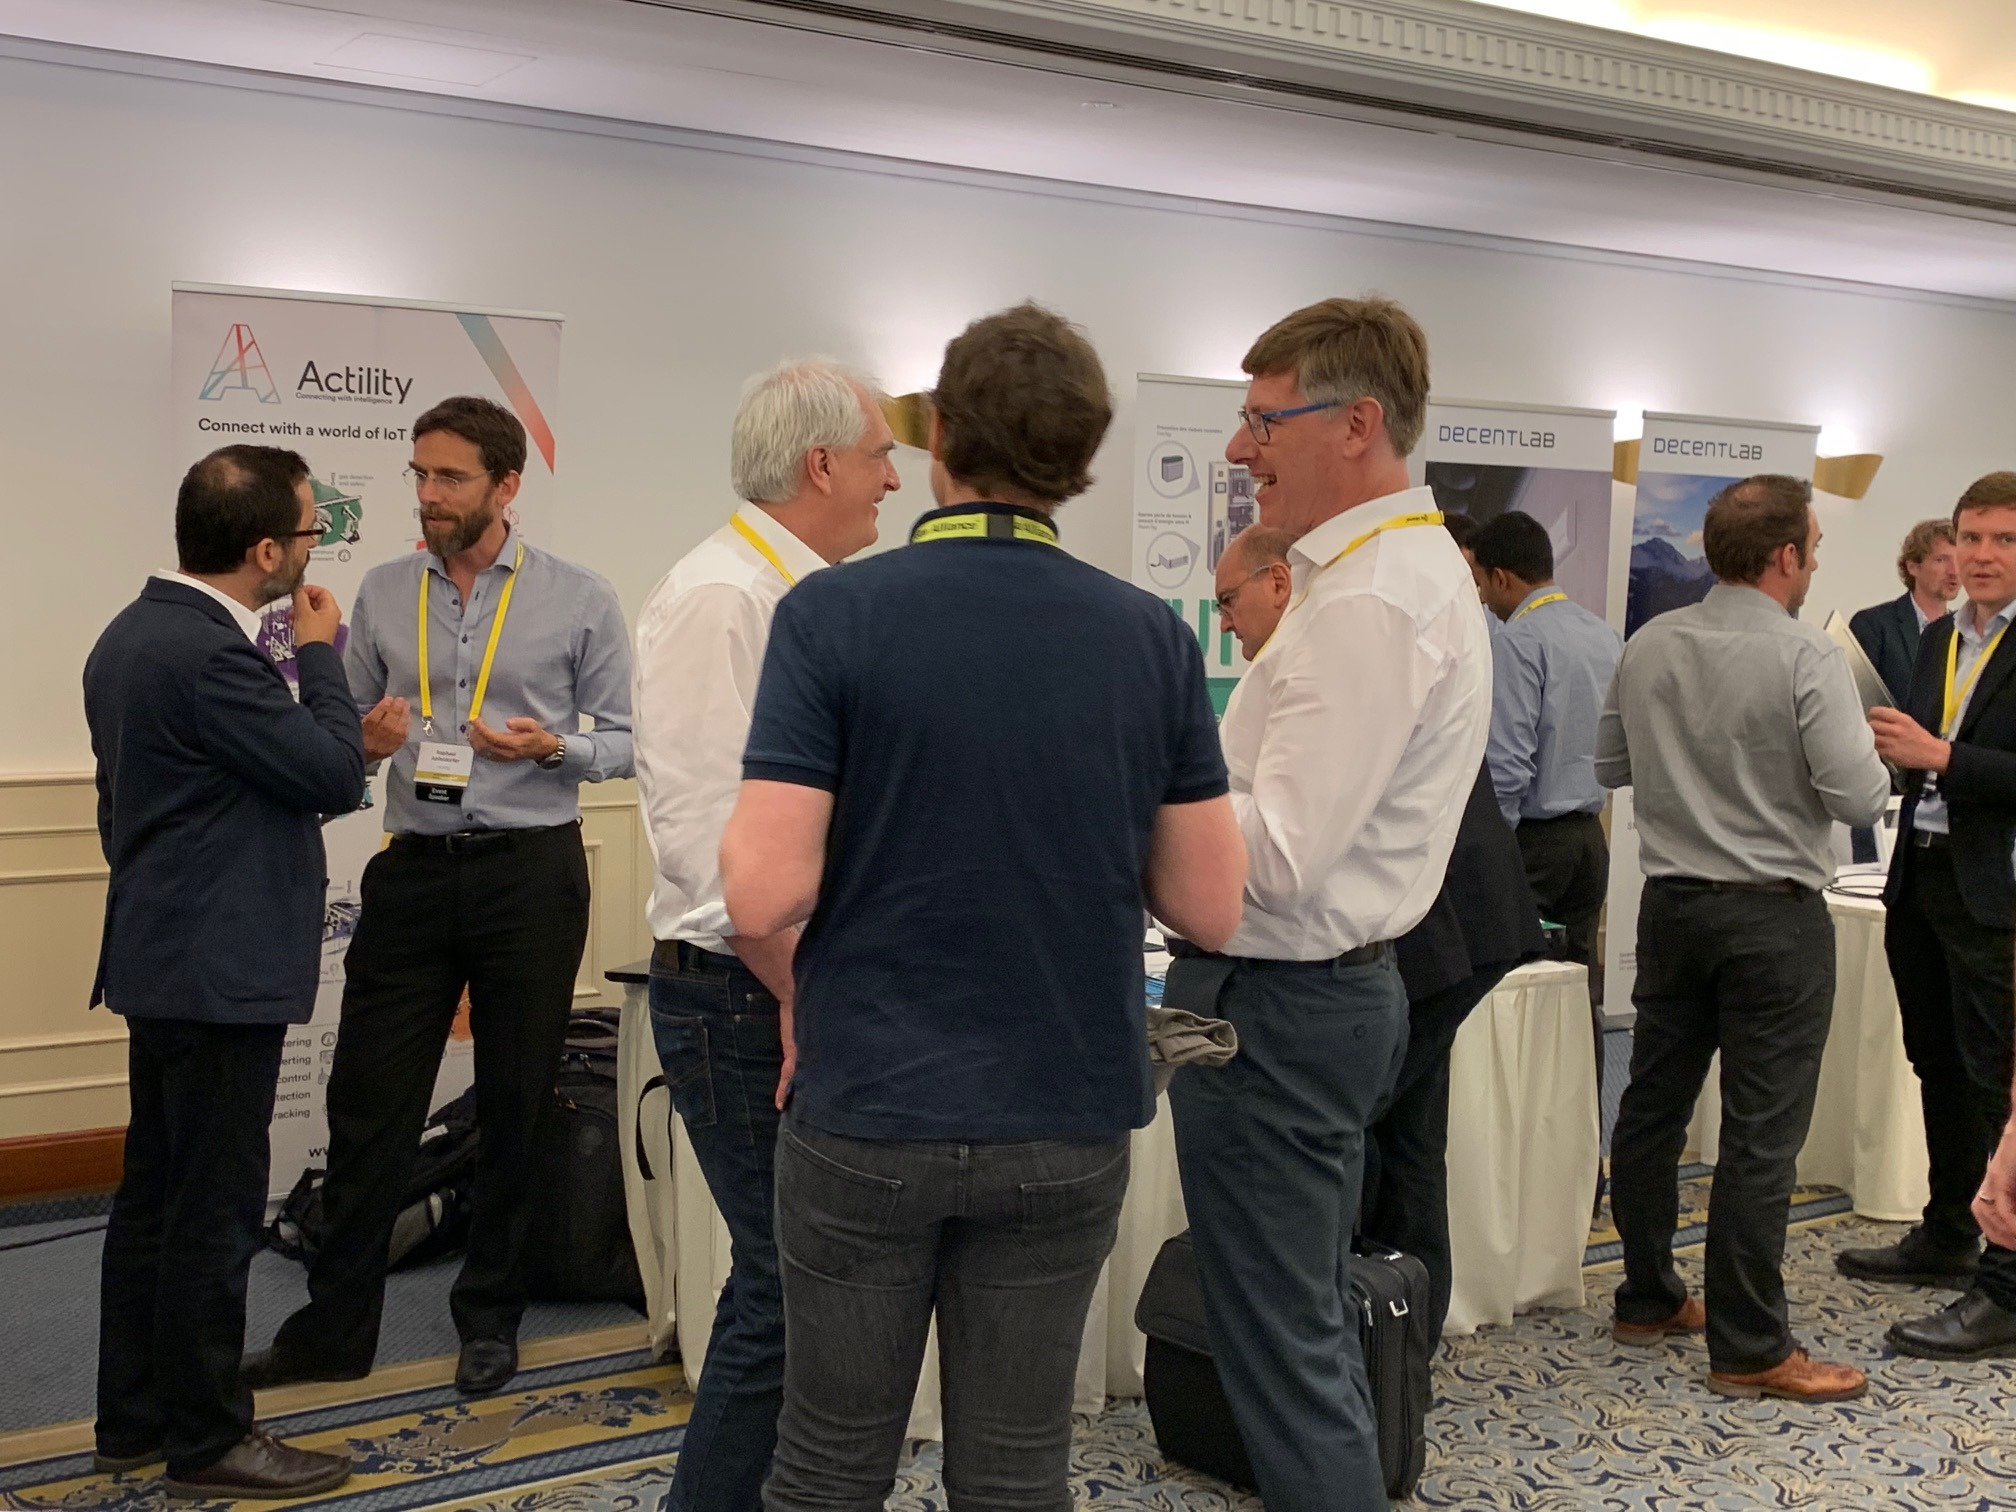 LoRa Alliance AMM Actility Booth